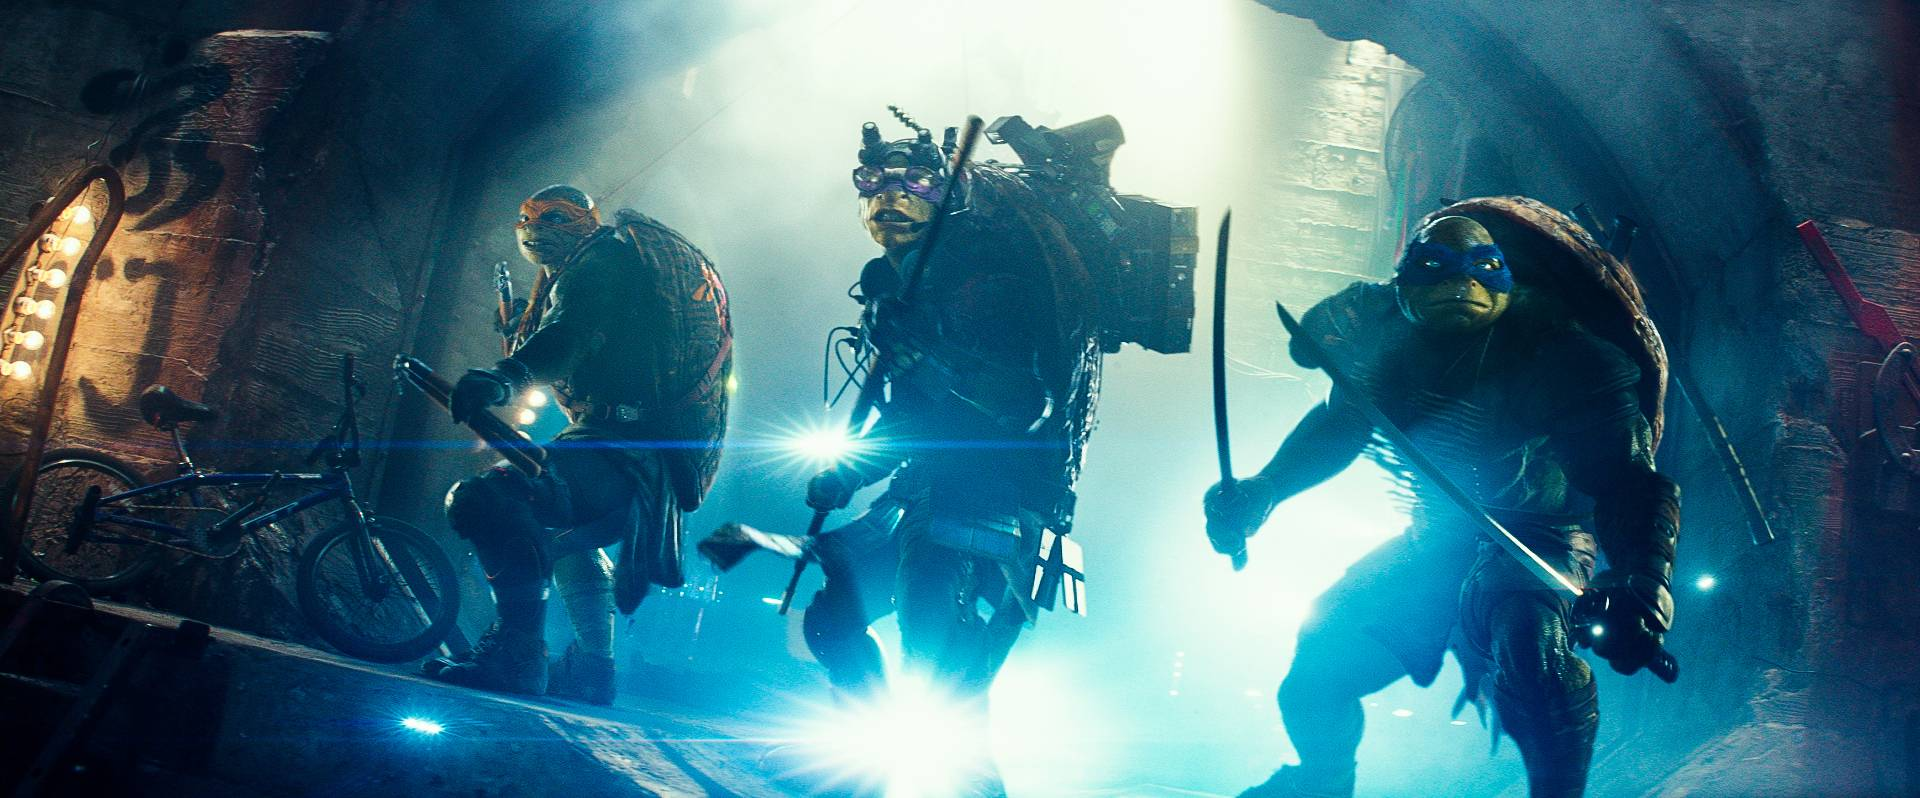 "Michelangelo, Donatello and Leonardo return to action in ""Teenage Mutant Ninja Turtles."""